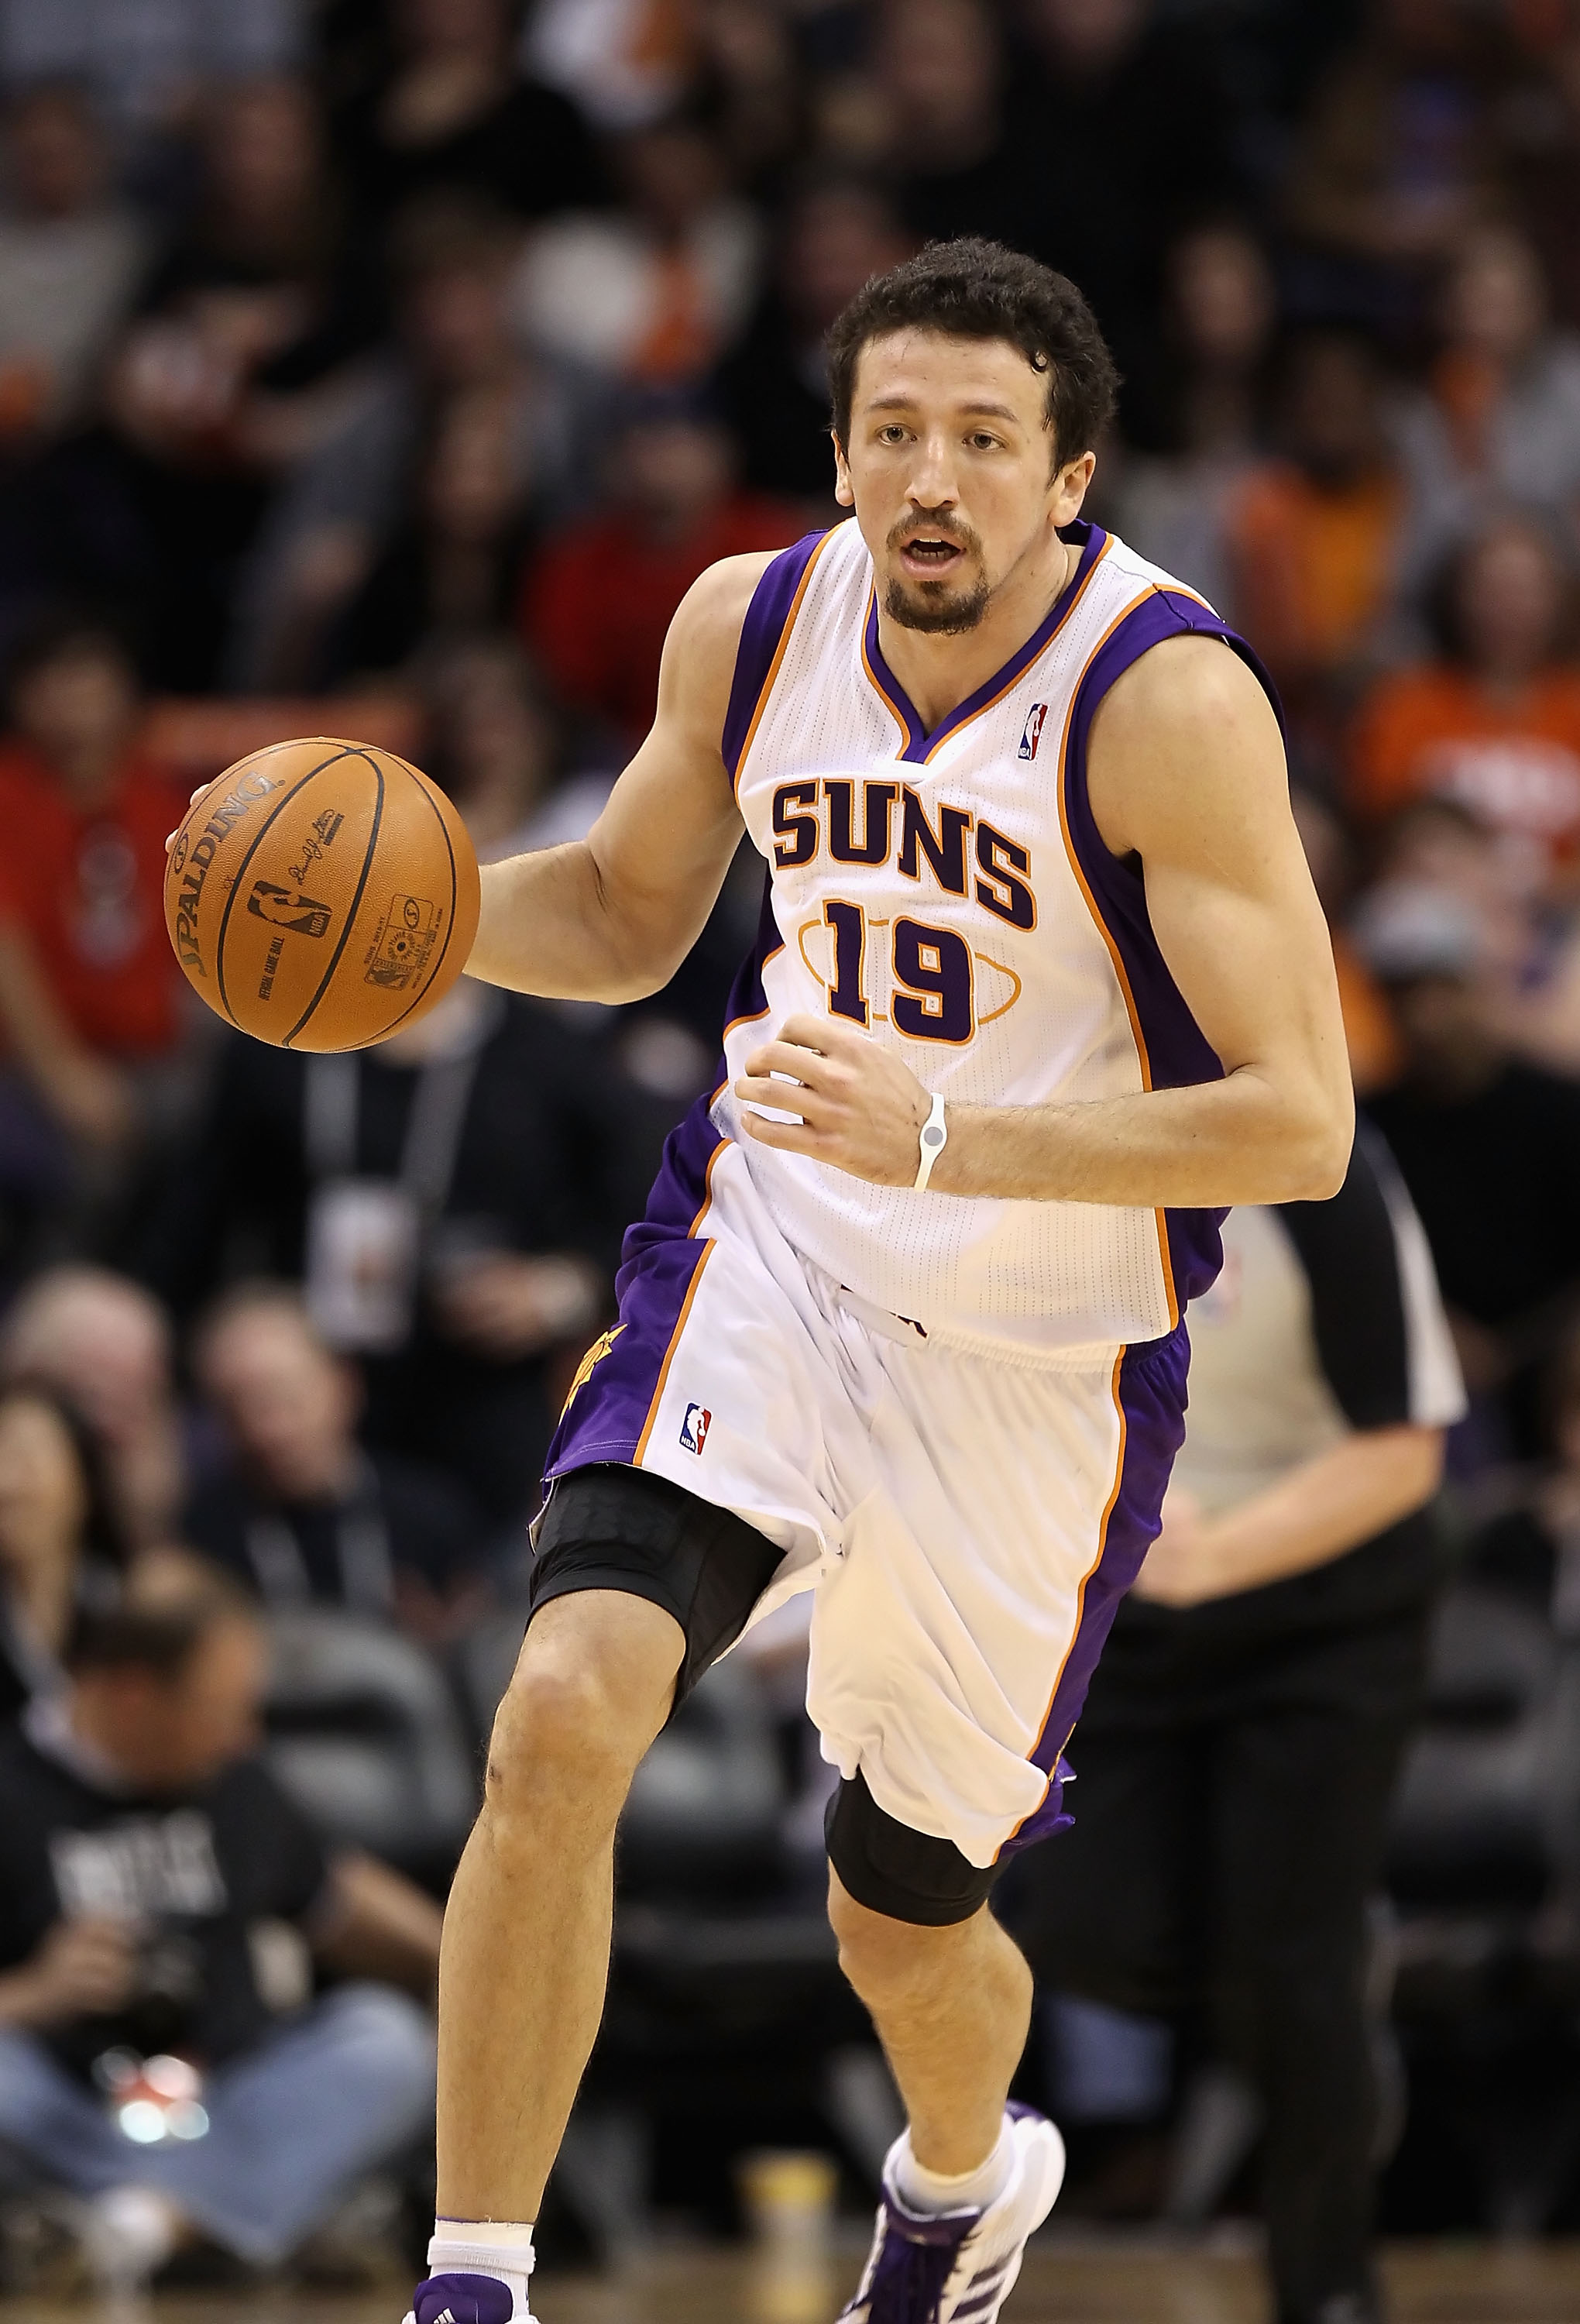 PHOENIX - NOVEMBER 24:  Hedo Turkoglu #19 of the Phoenix Suns handles the ball during the NBA game against the Chicago Bulls at US Airways Center on November 24, 2010 in Phoenix, Arizona. The Bulls defeated the Suns 123-115 in double overtime. NOTE TO USE